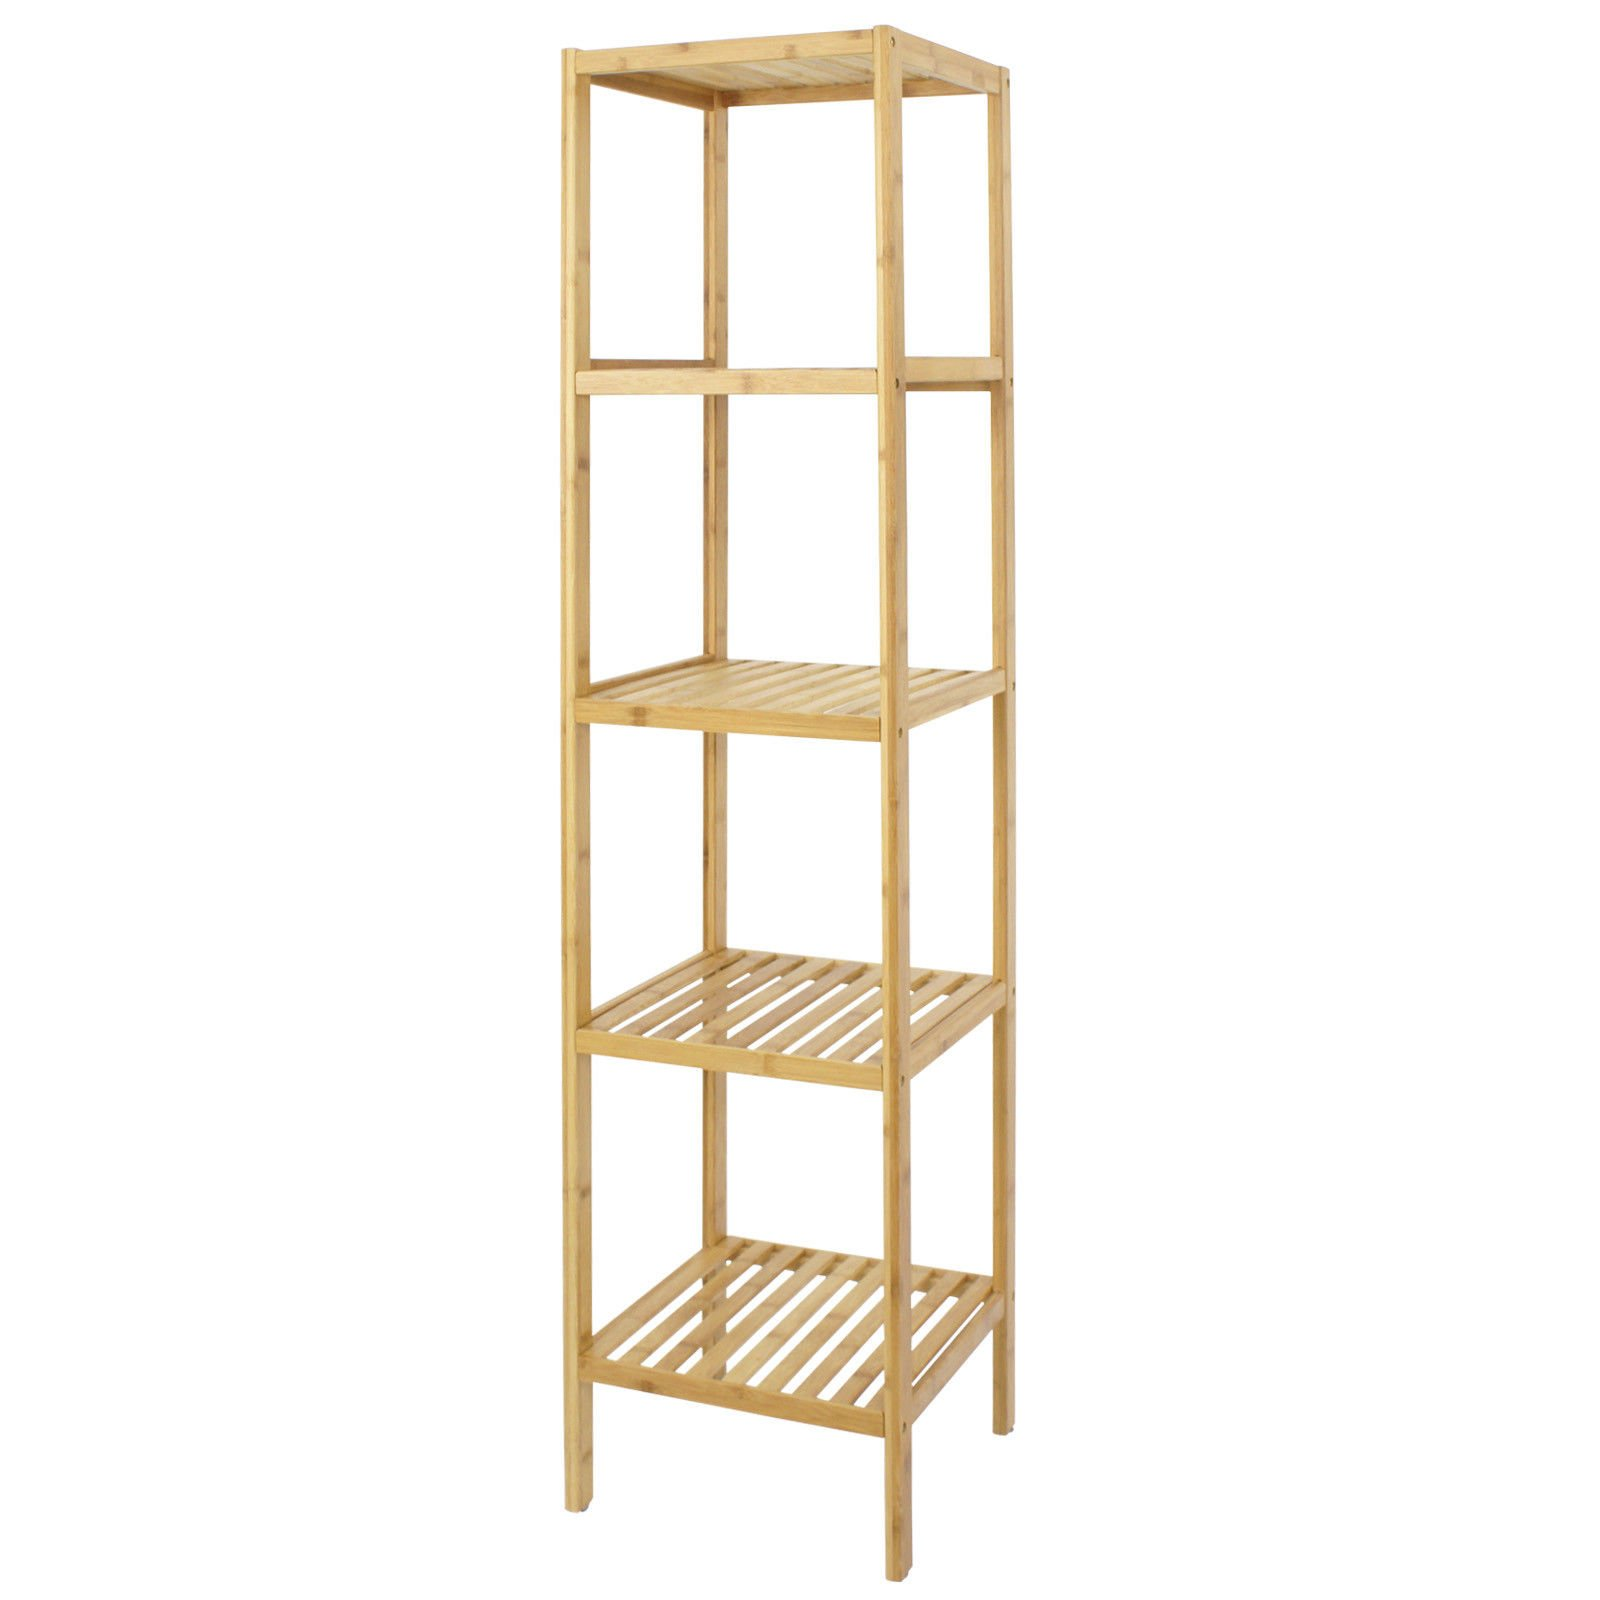 5-Tier Bamboo Storage Shelf Bathroom Organizing Rack Home Decor Living Room by Unknown